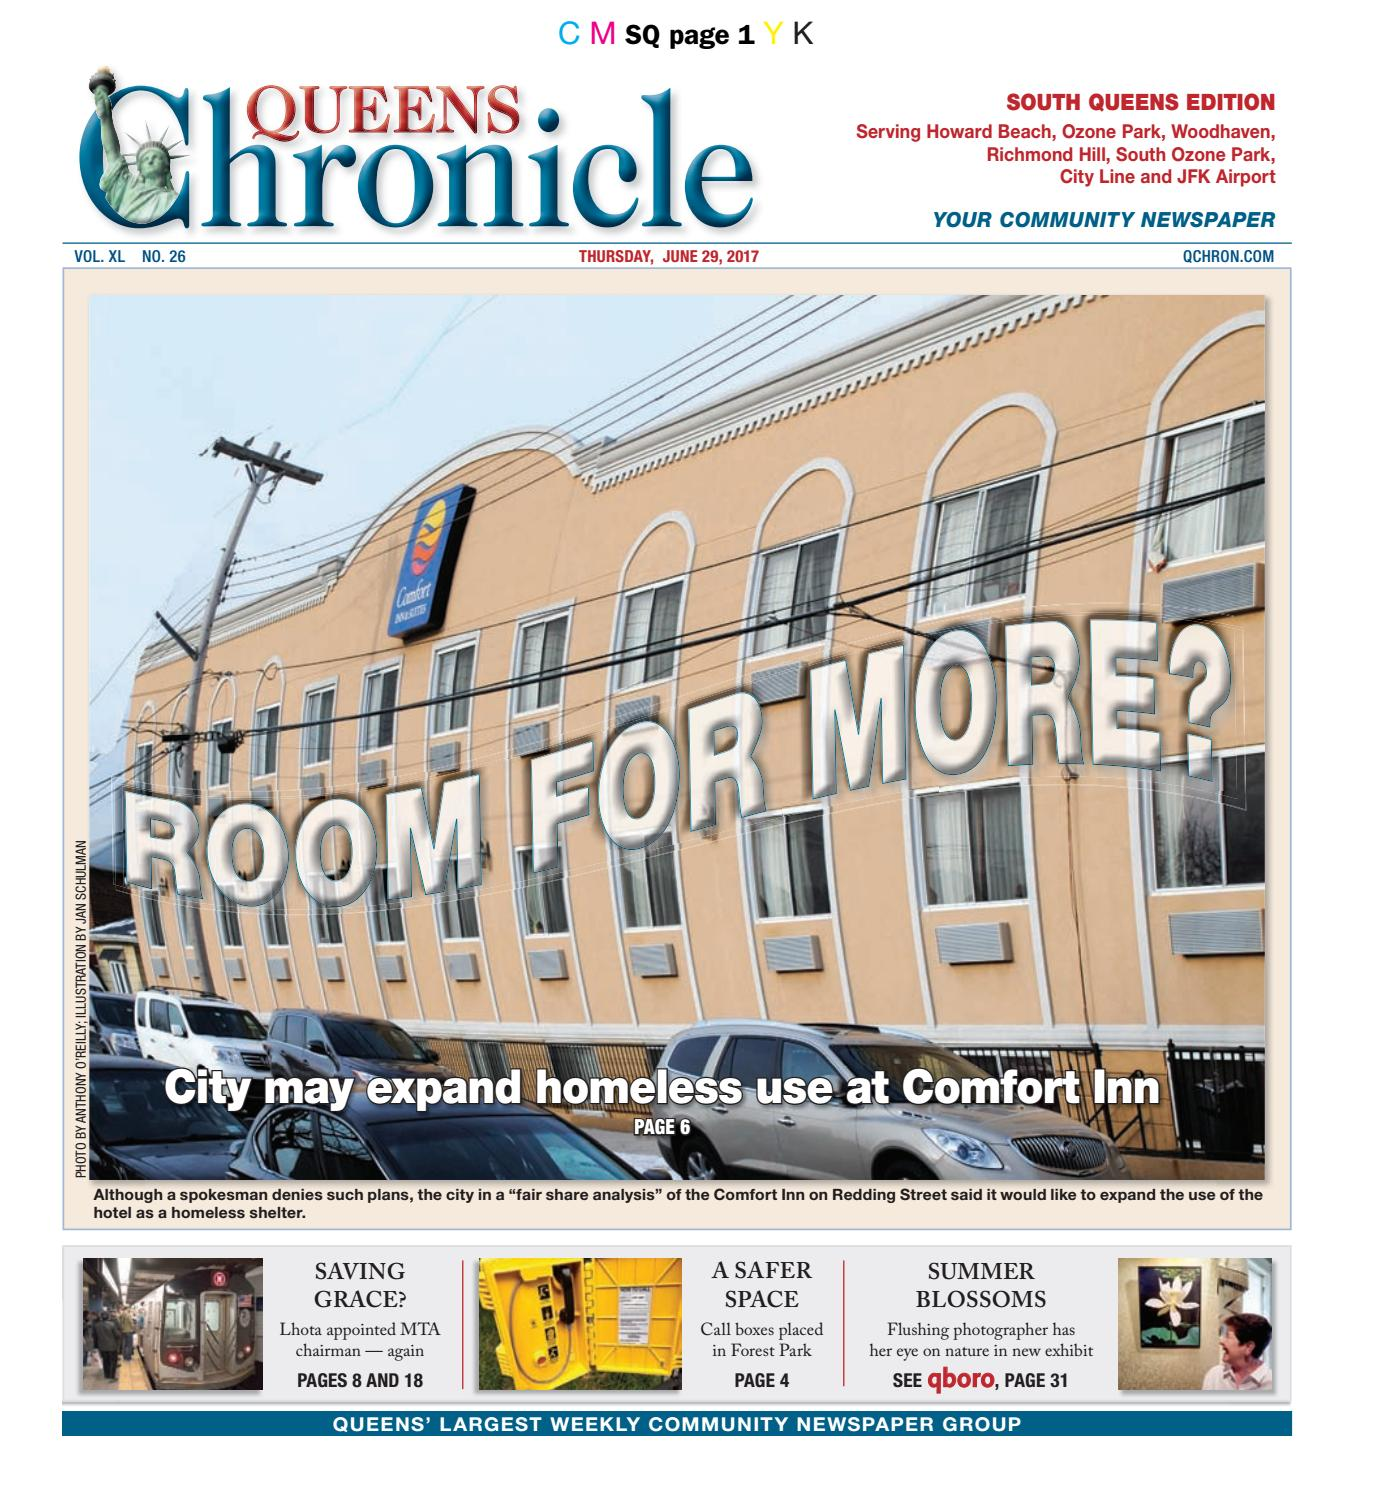 Queens Chronicle South Edition 6 29 17 by Queens Chronicle issuu